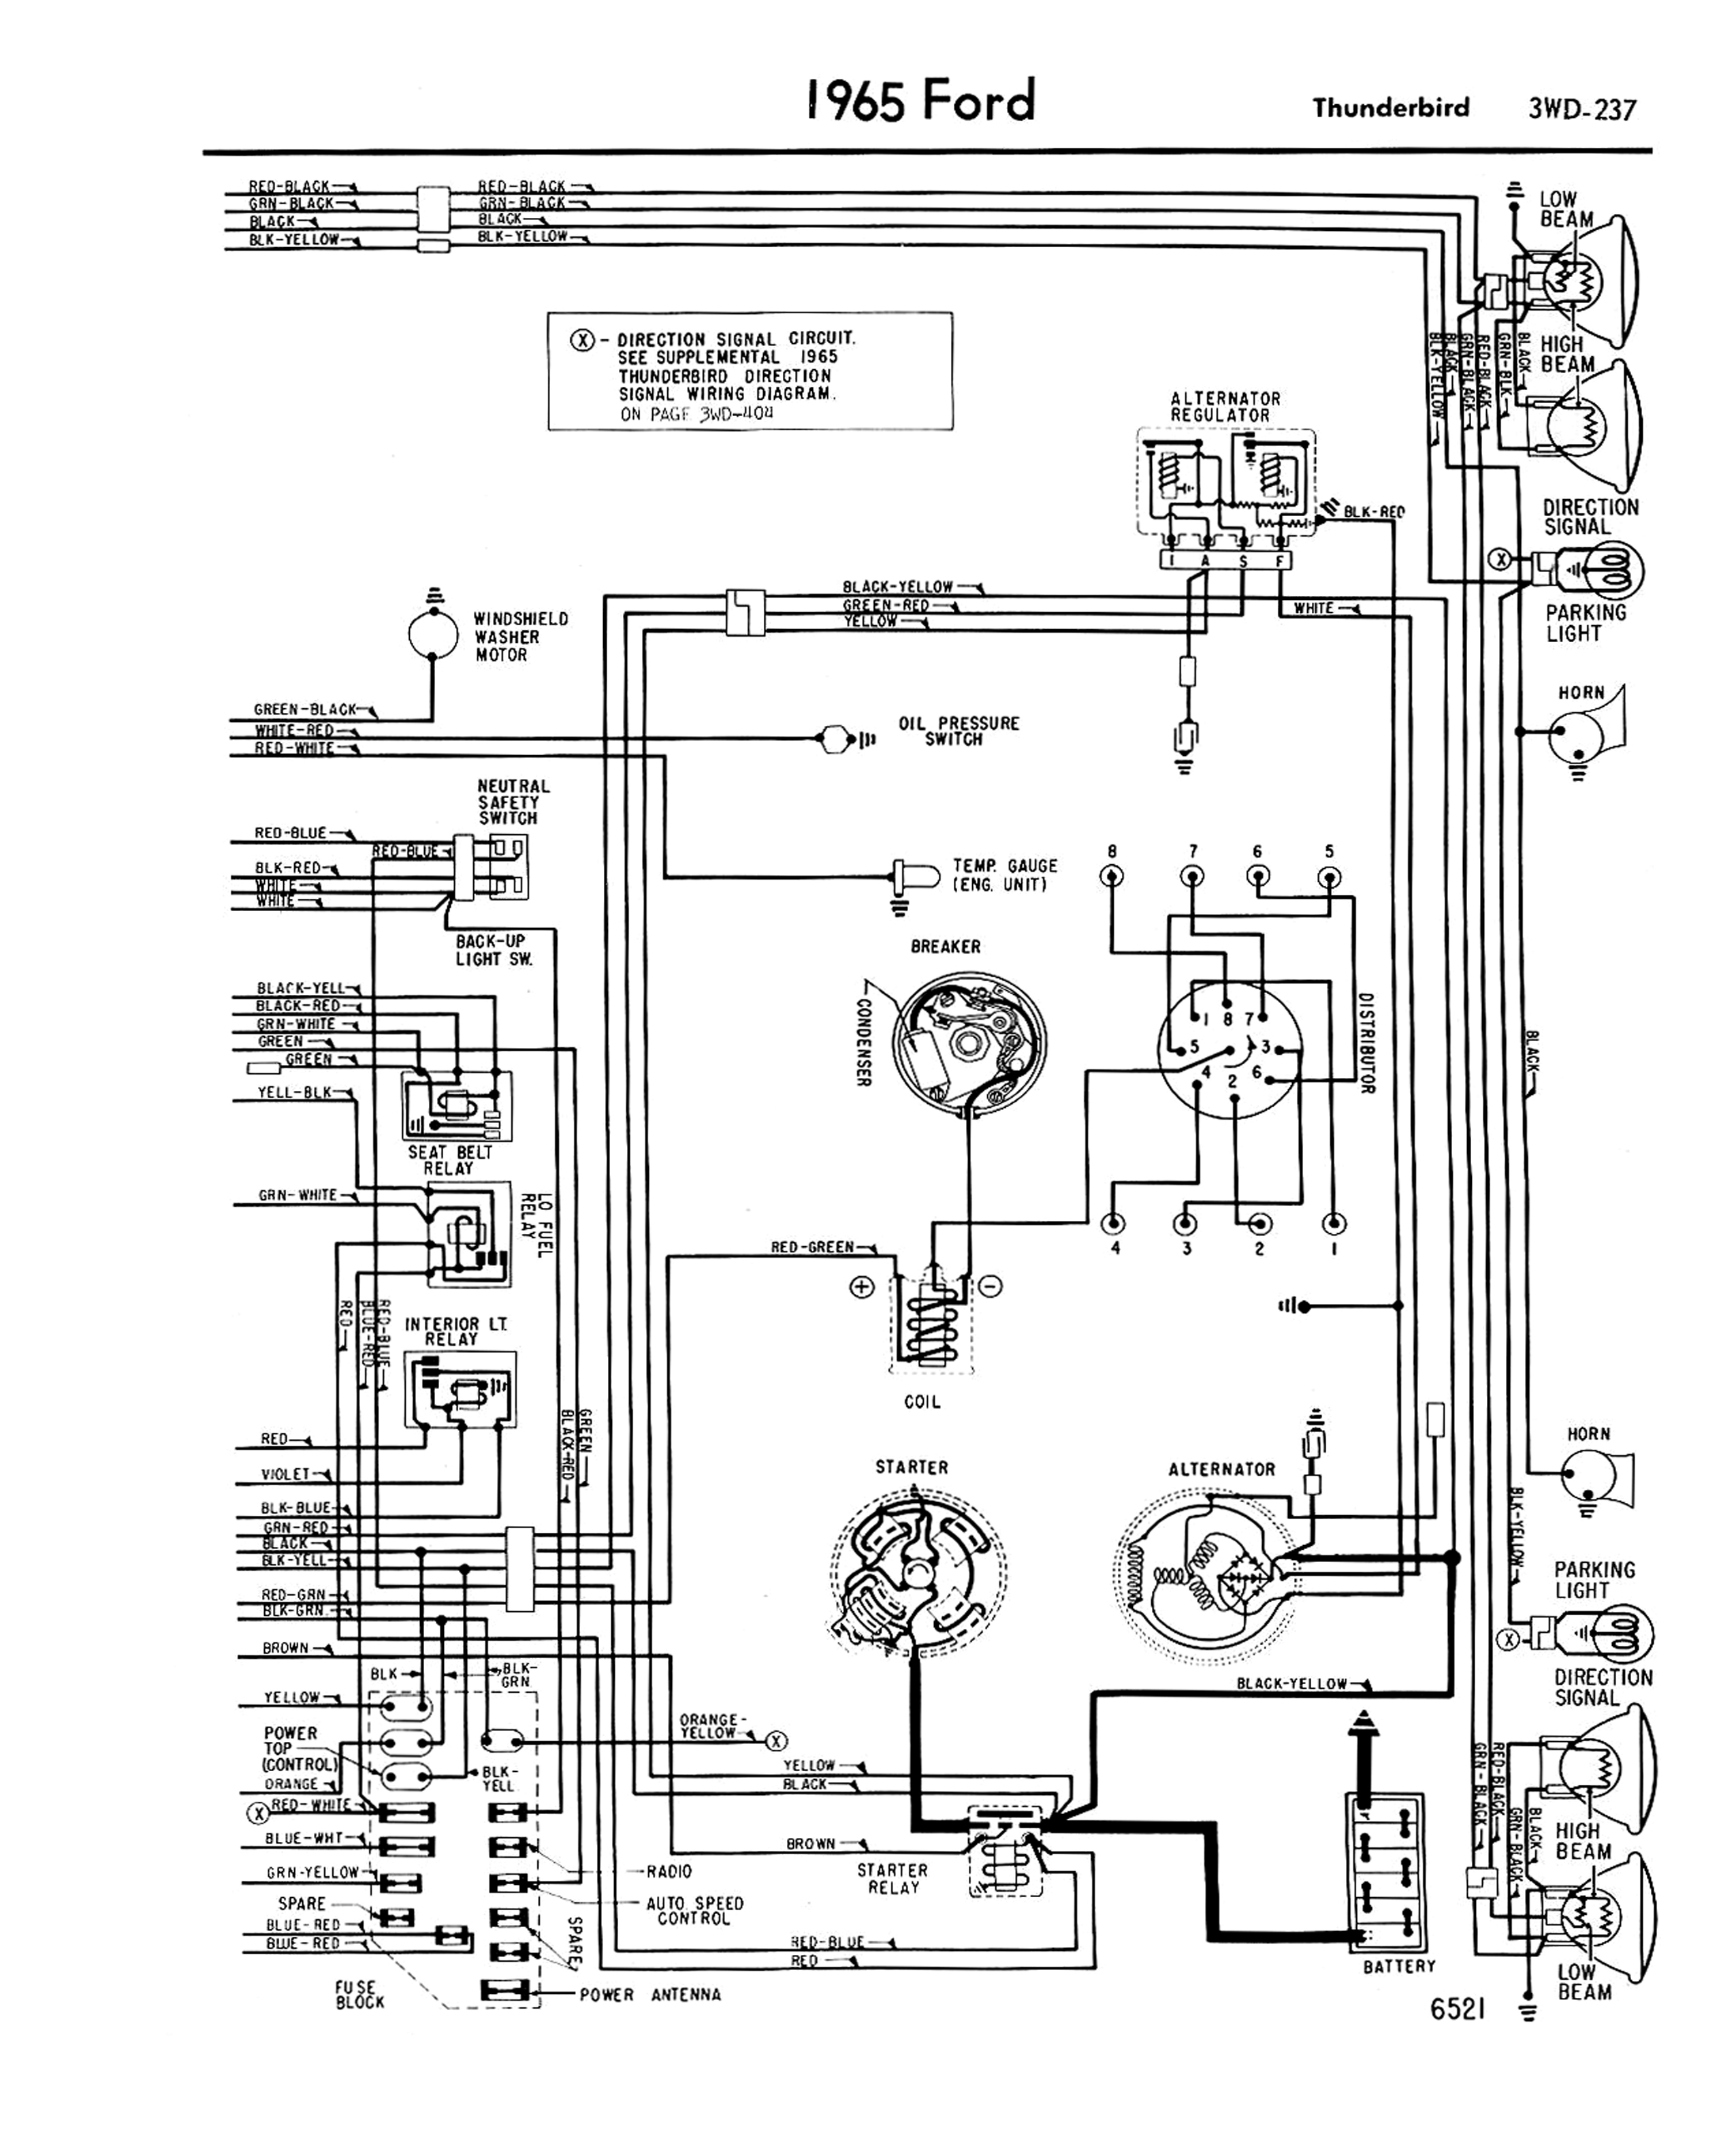 1986 Thunderbird Wiring Diagram